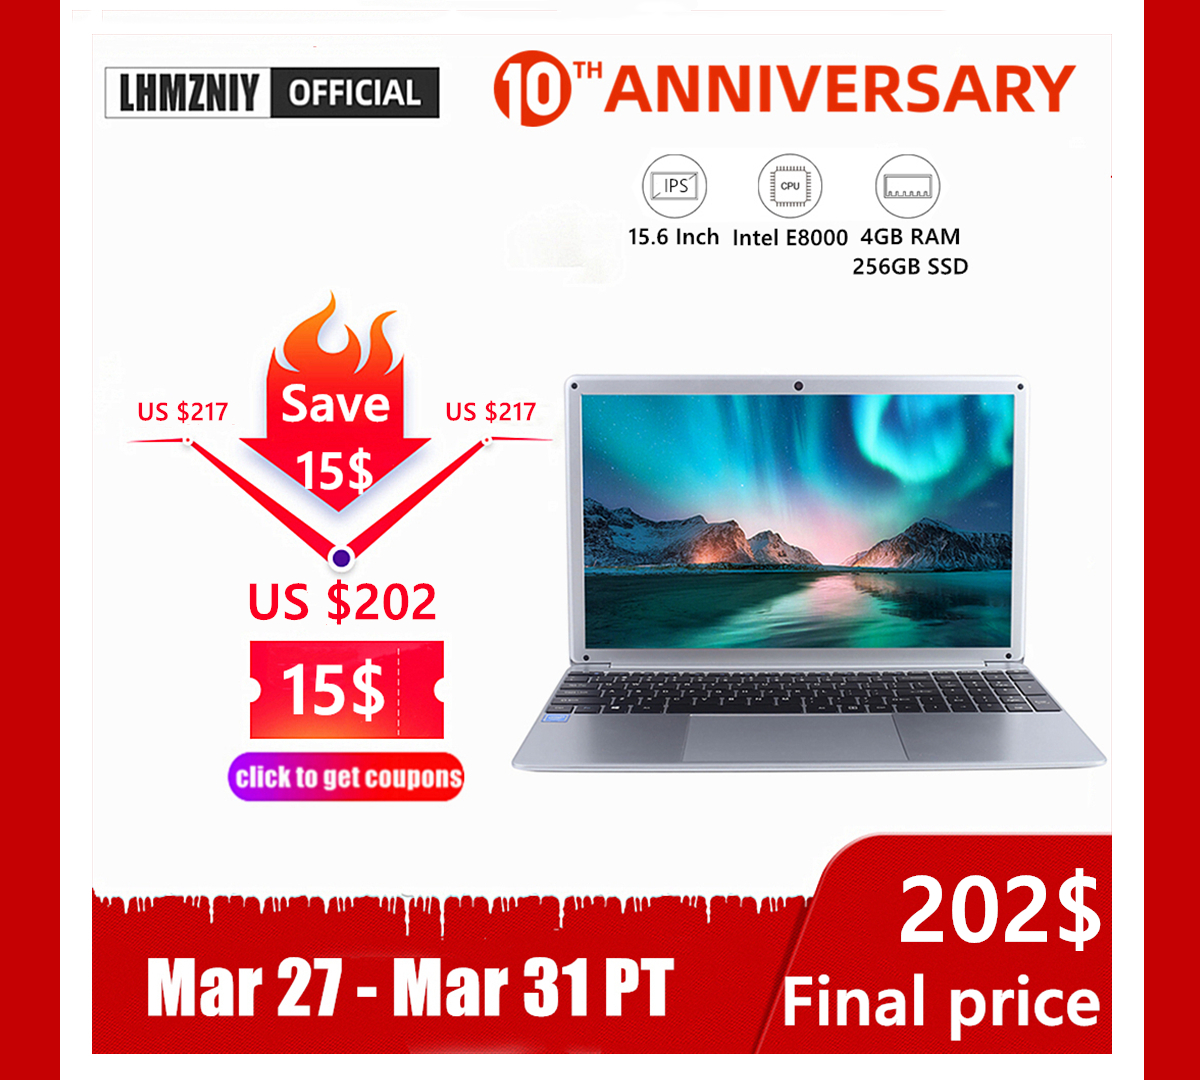 LHMZNIY RX-5 Student Laptop 15.6 Inch FHD IPS Screen Intel E8000 4GB RAM 256GB M.2 SSD Netbook 1080P